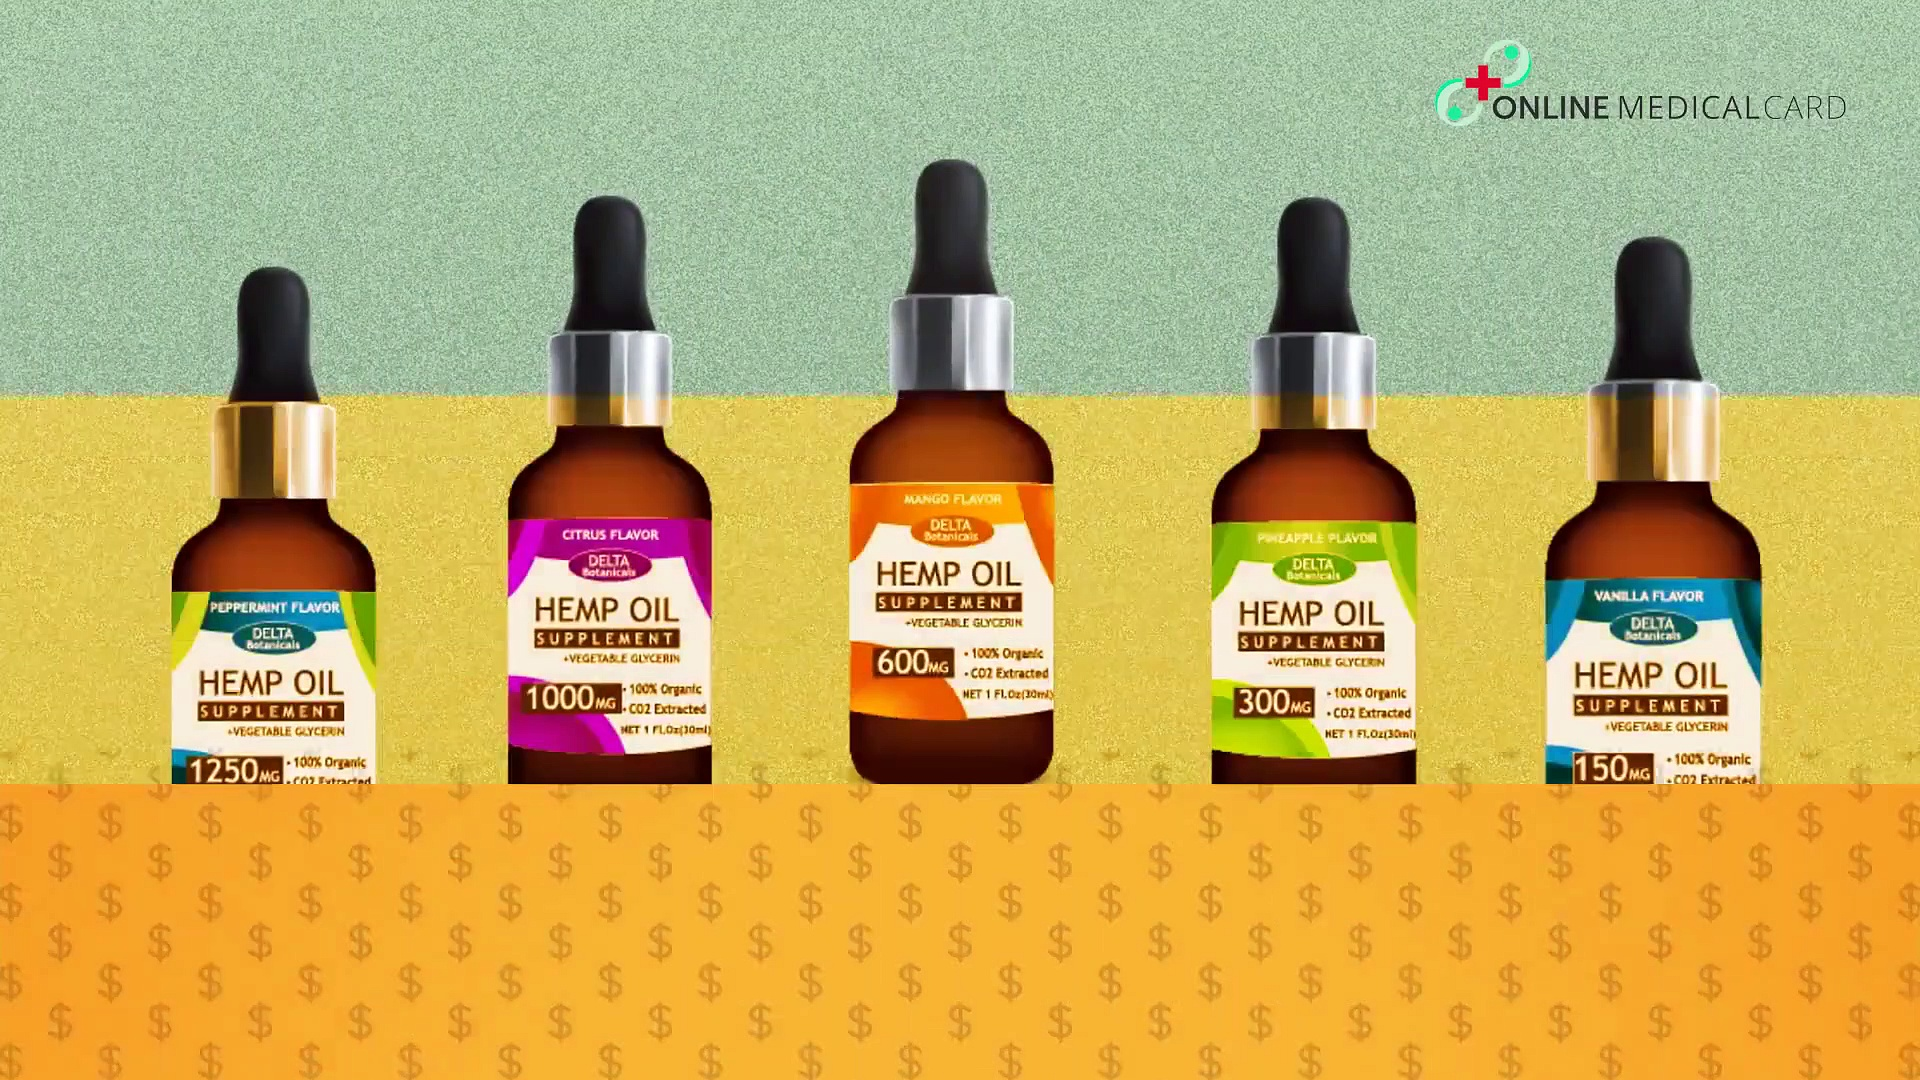 Medicate effectively without any side-effects with Delta Botanical CBD oil